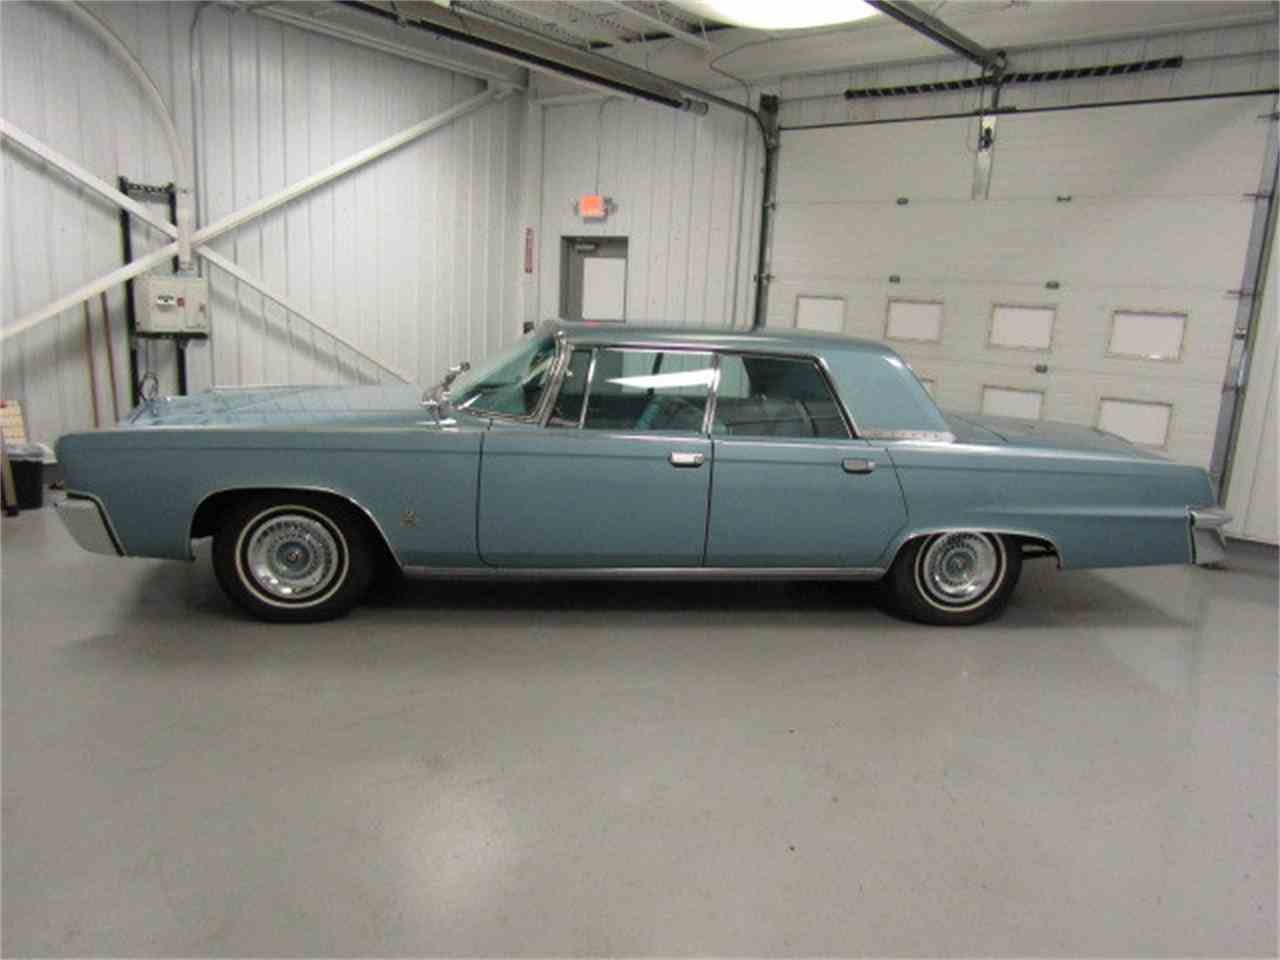 Large Picture of Classic 1964 Chrysler Imperial located in Virginia - $21,970.00 - JLDR